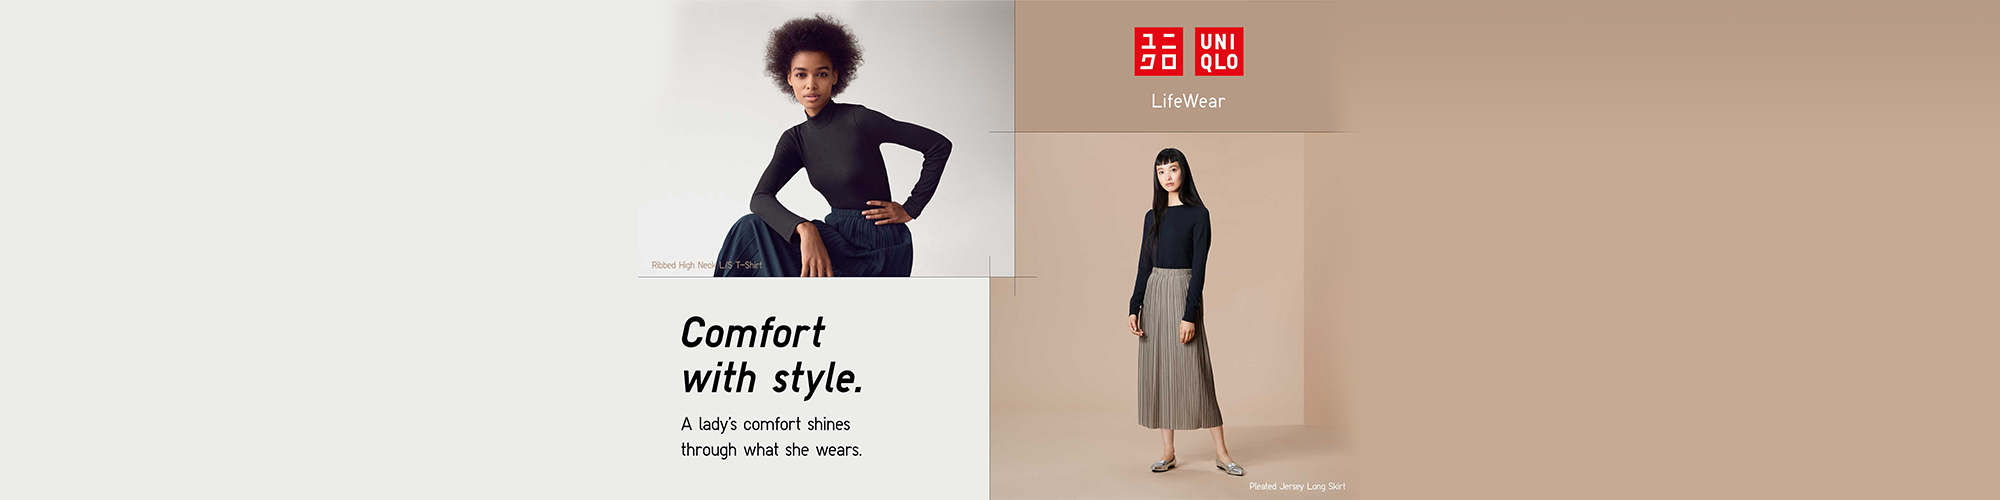 km_website_slider_uniqlo_090819